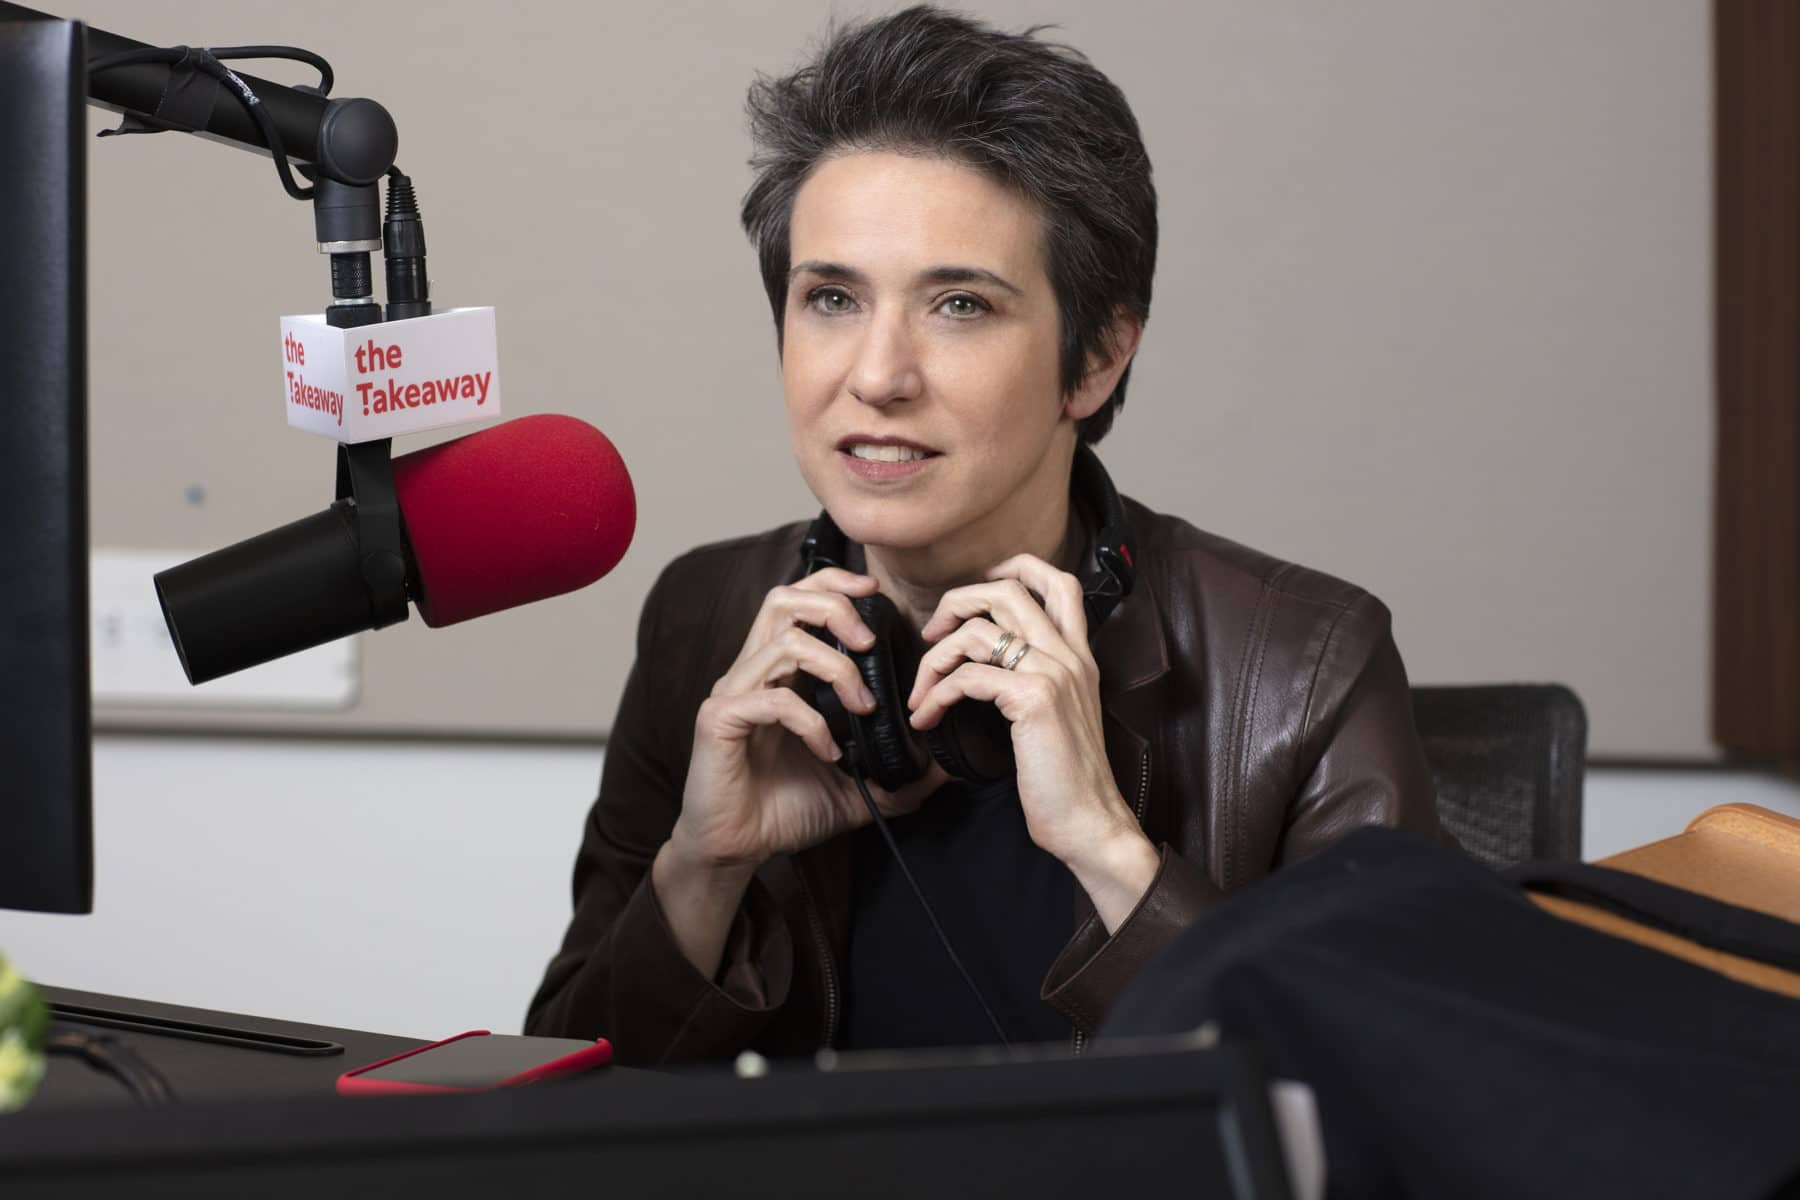 Photo of Amy Walter by Matthew Septimus